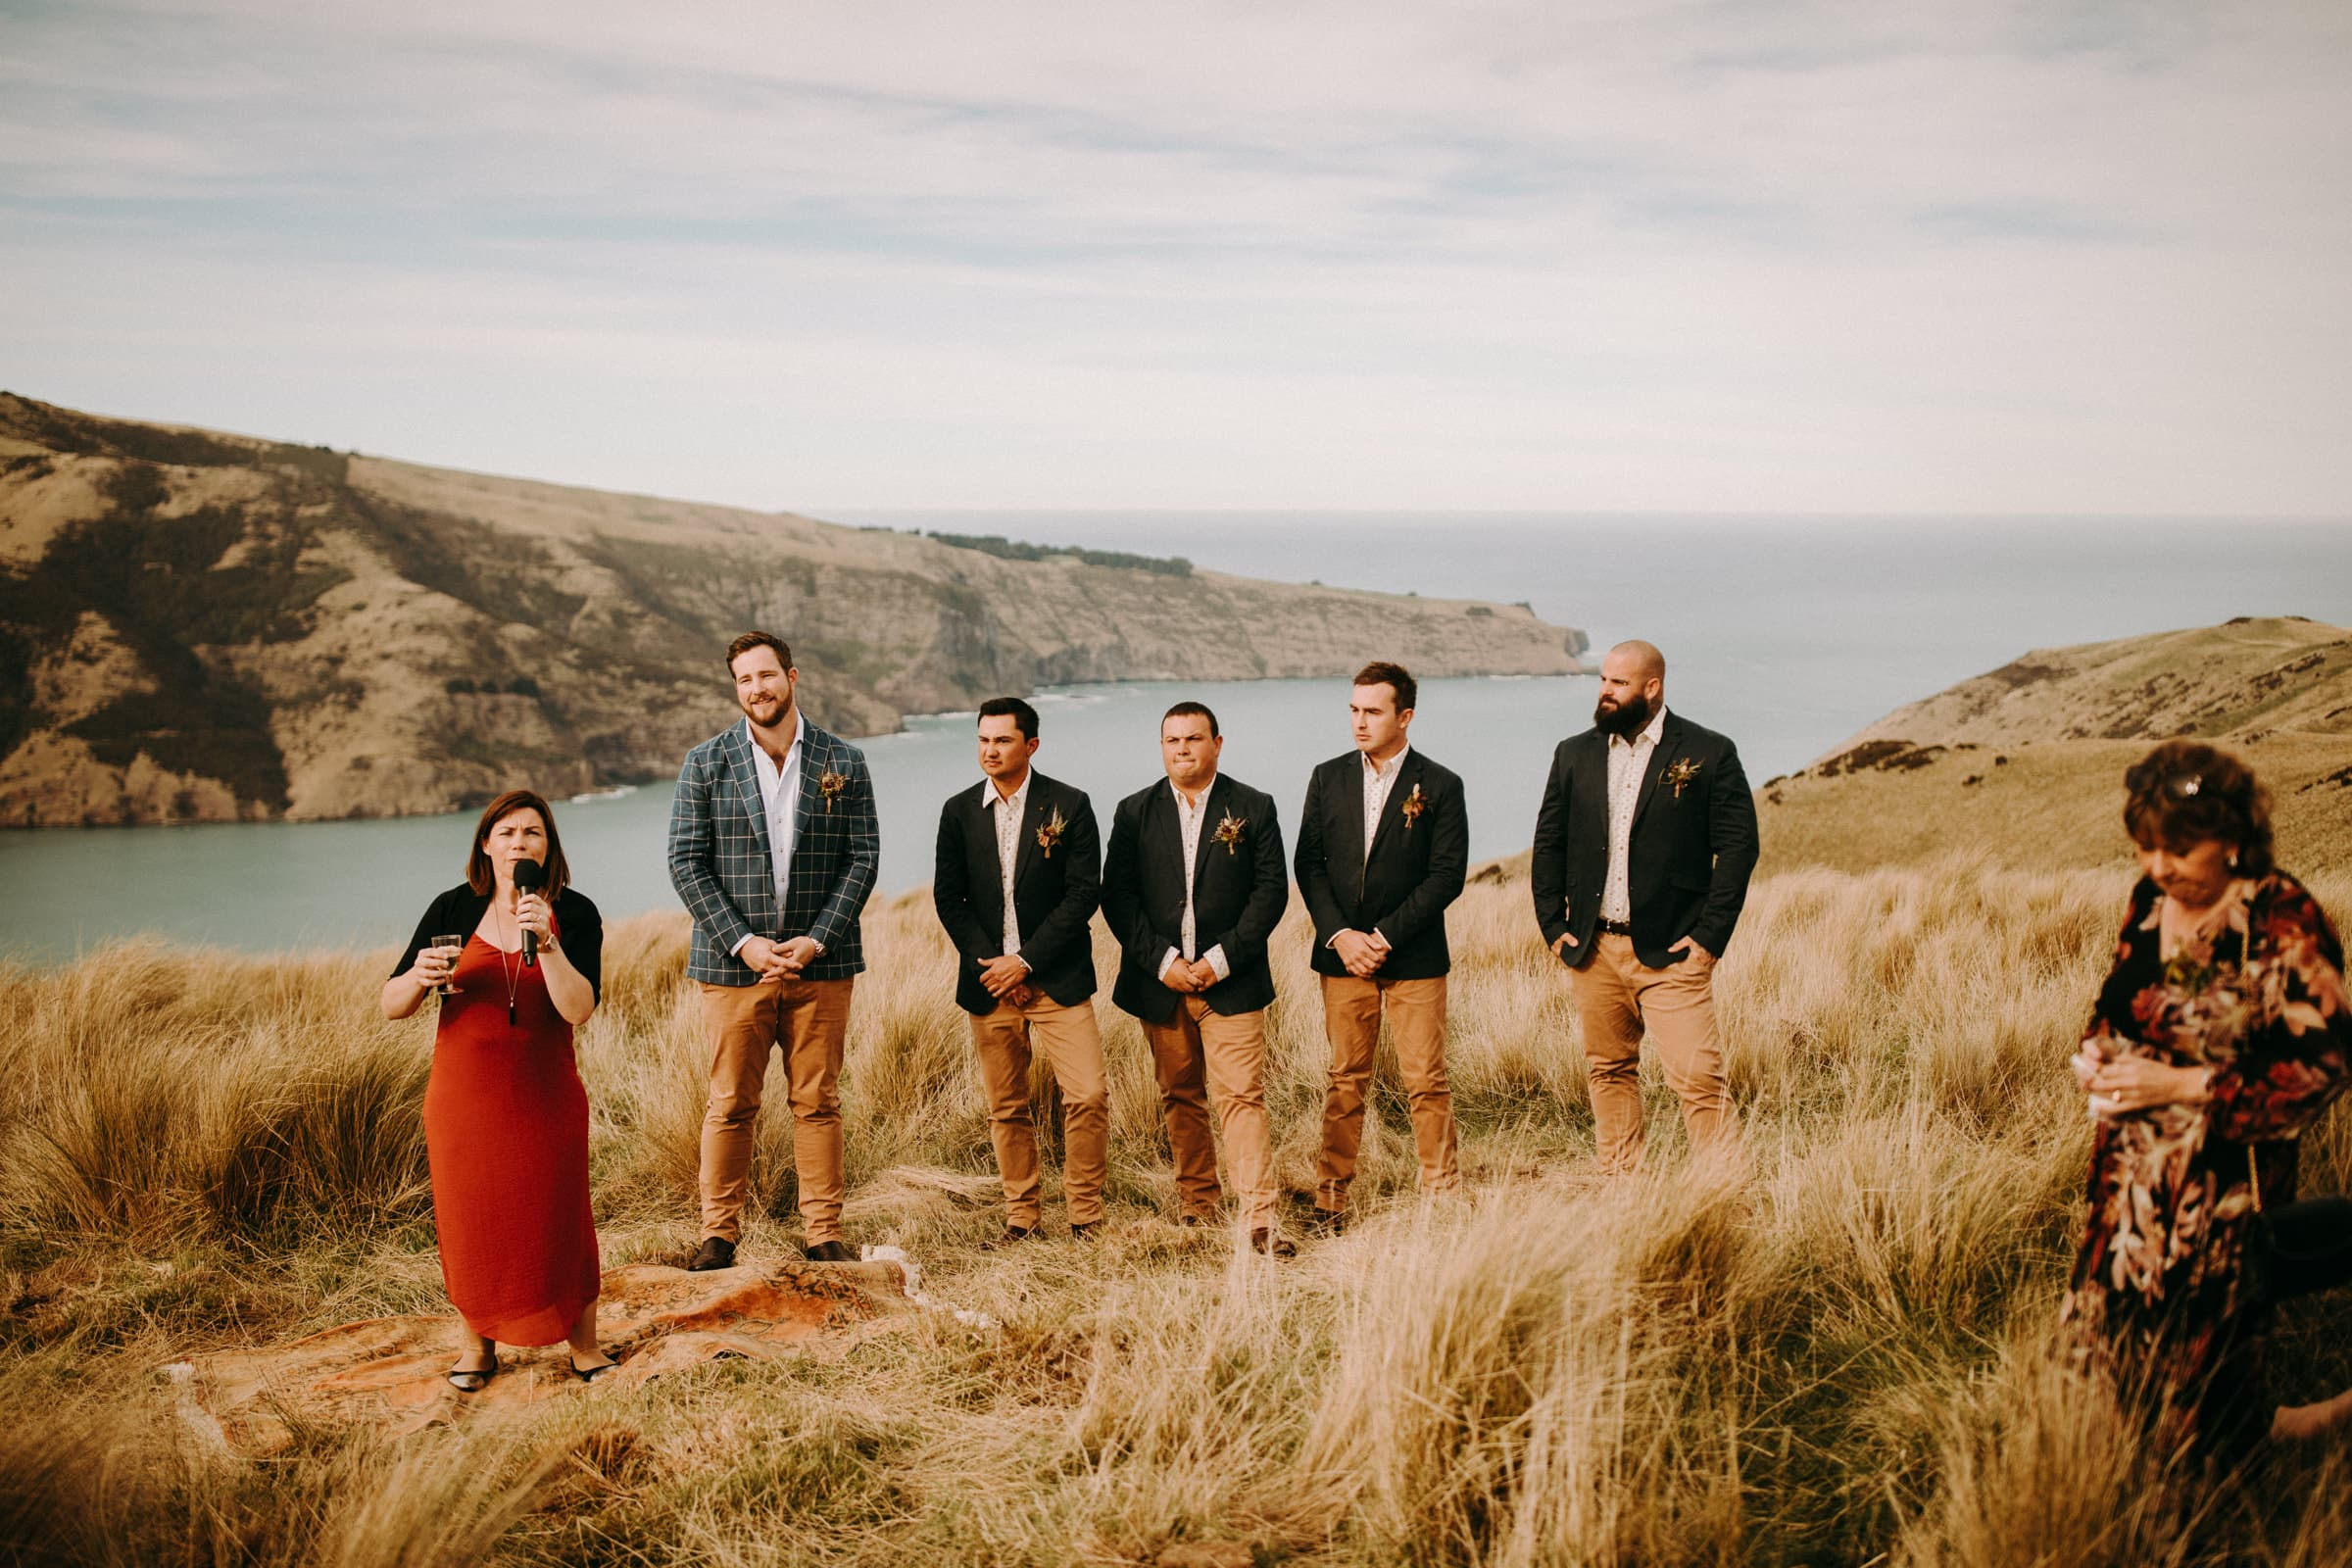 A groom, his groomsmen and other wedding guests are standing in a meadow.